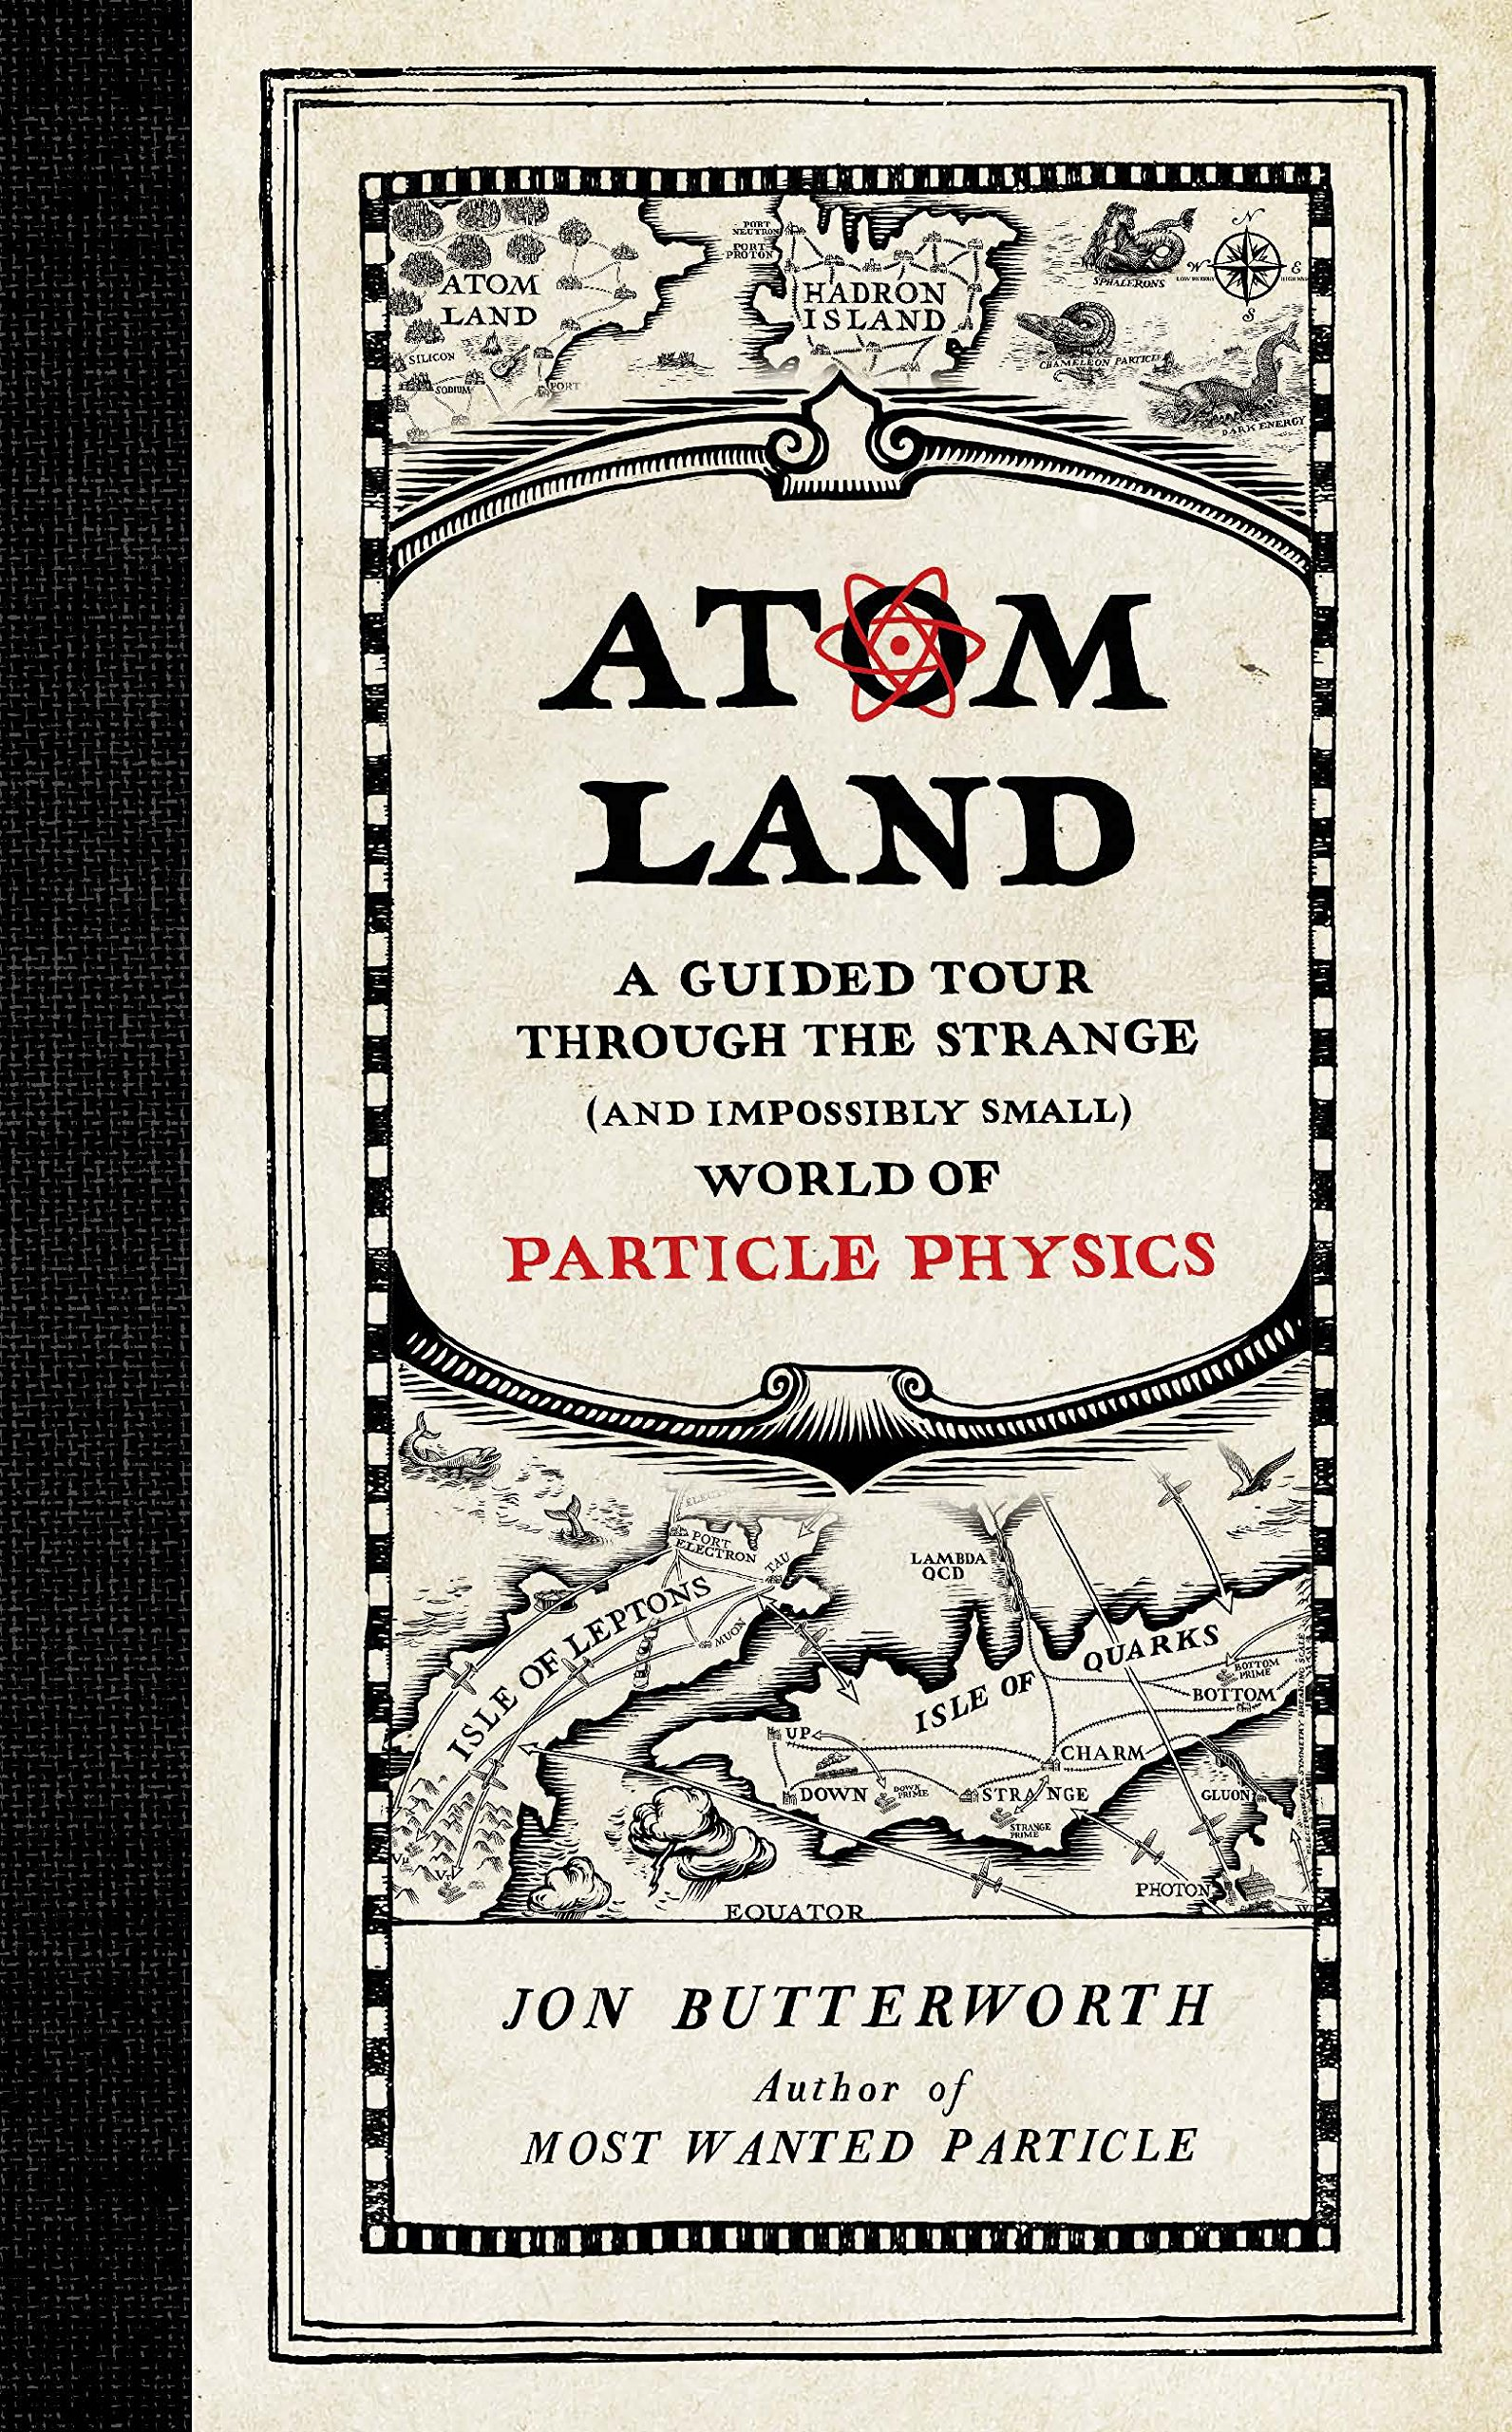 Atom Land: A Guided Tour Through the Strange (And Impossibly Small) World of Particle Physics by Jon Butterworth